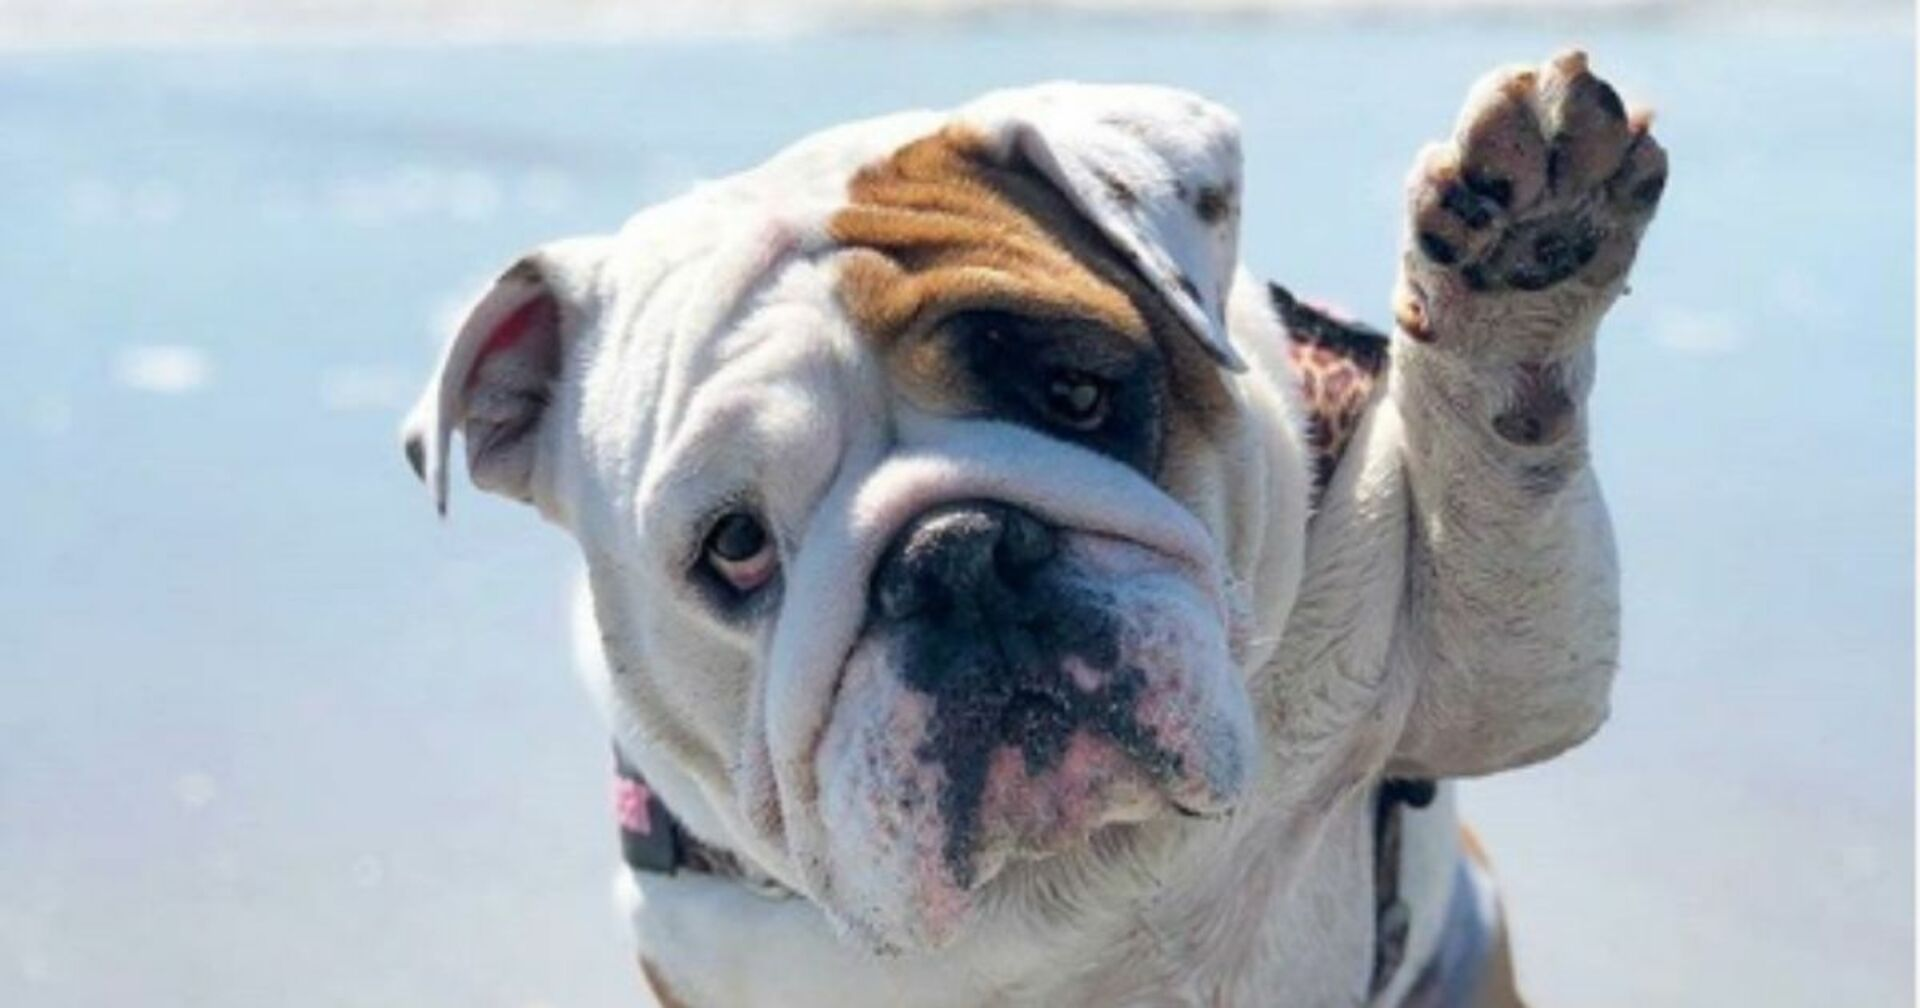 5 Most Expensive Dog Breeds In The Uk These Pooches Cost Big